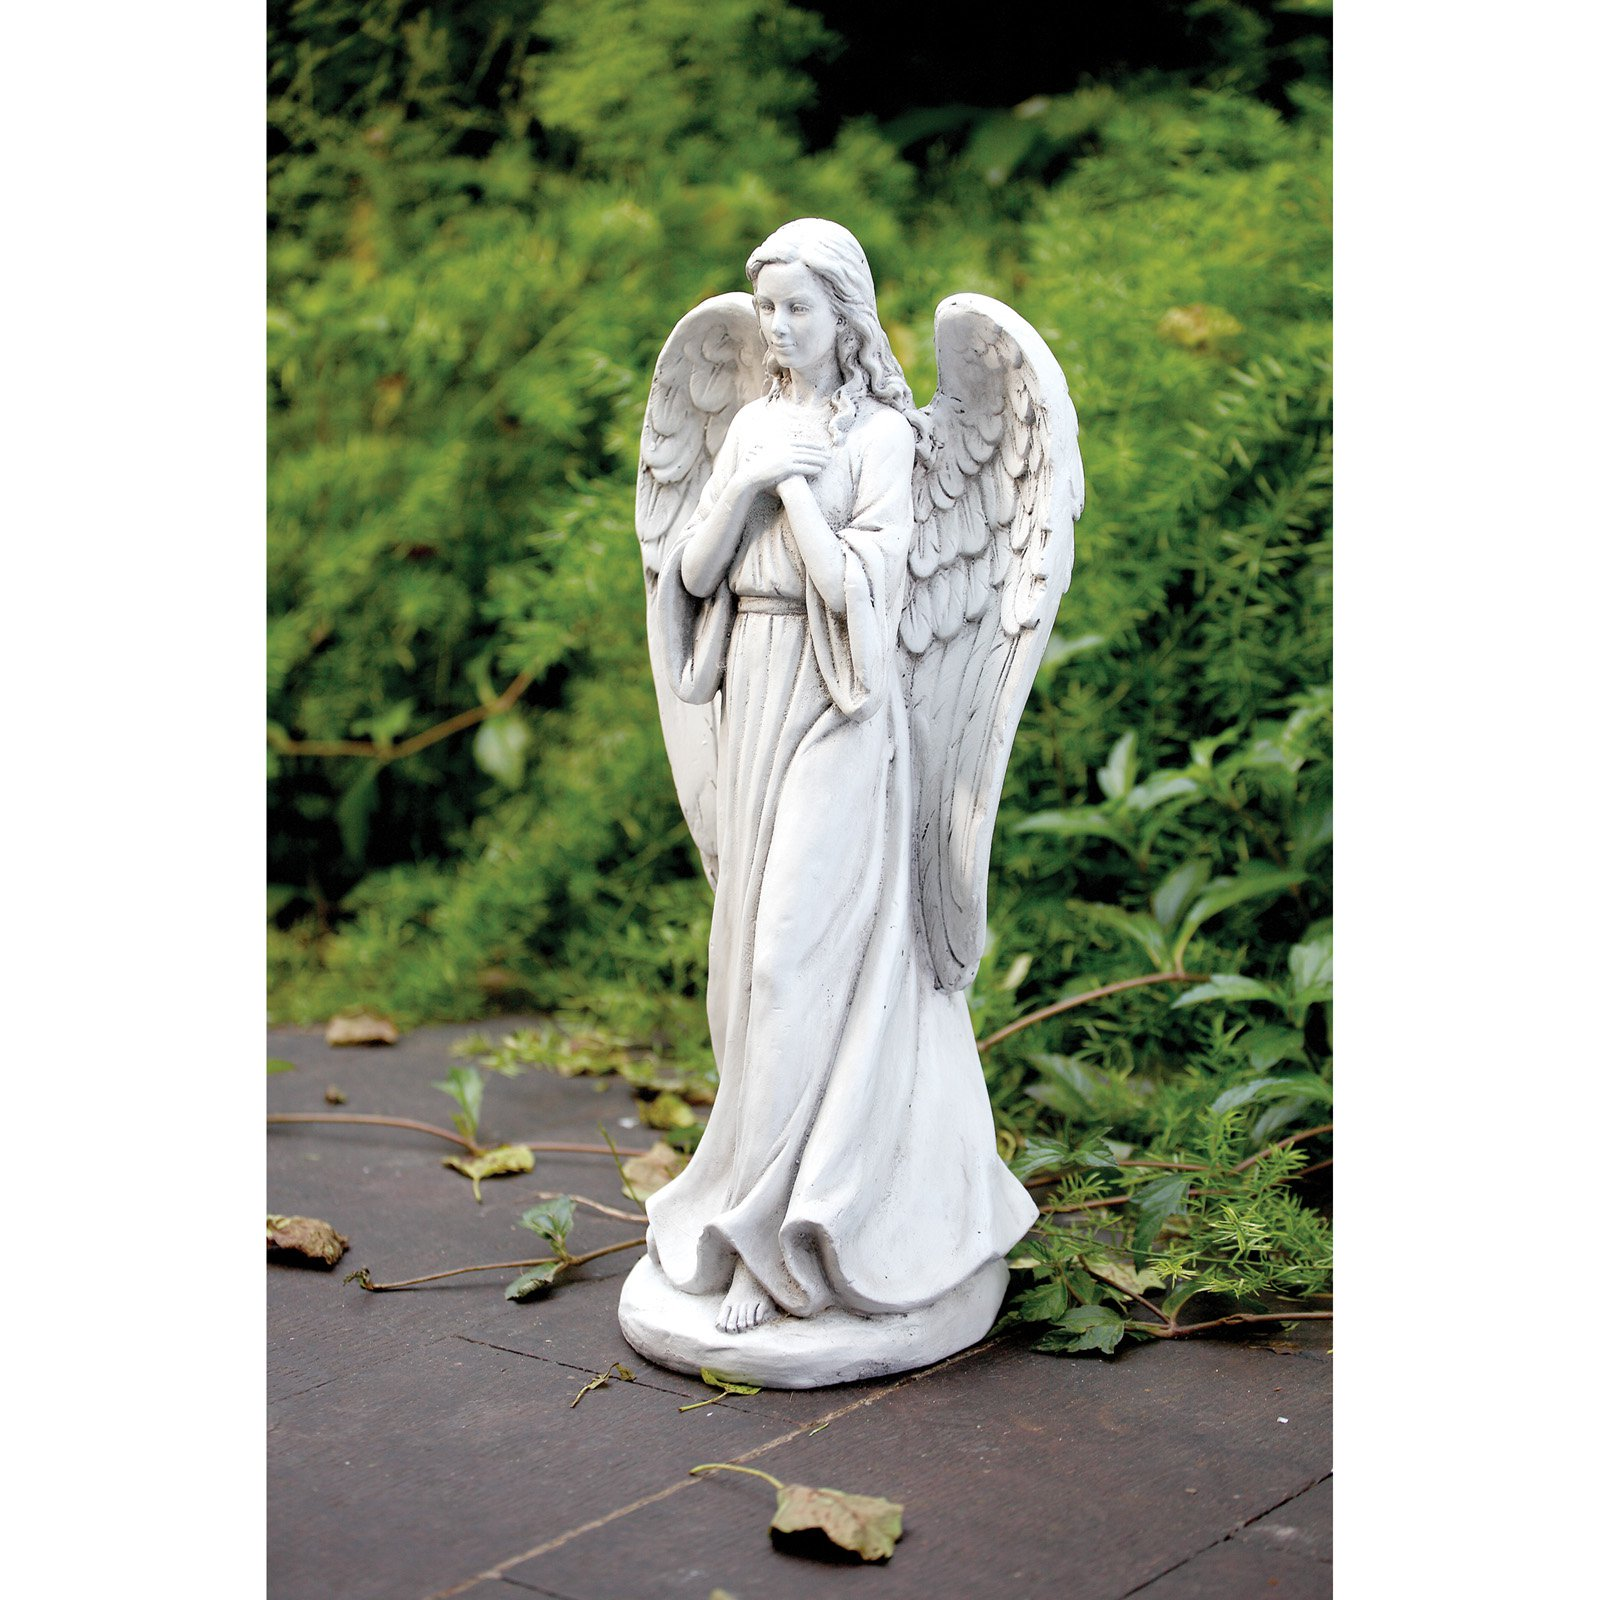 Napco White Praying Angel Garden Statue by Napco Marketing Corp